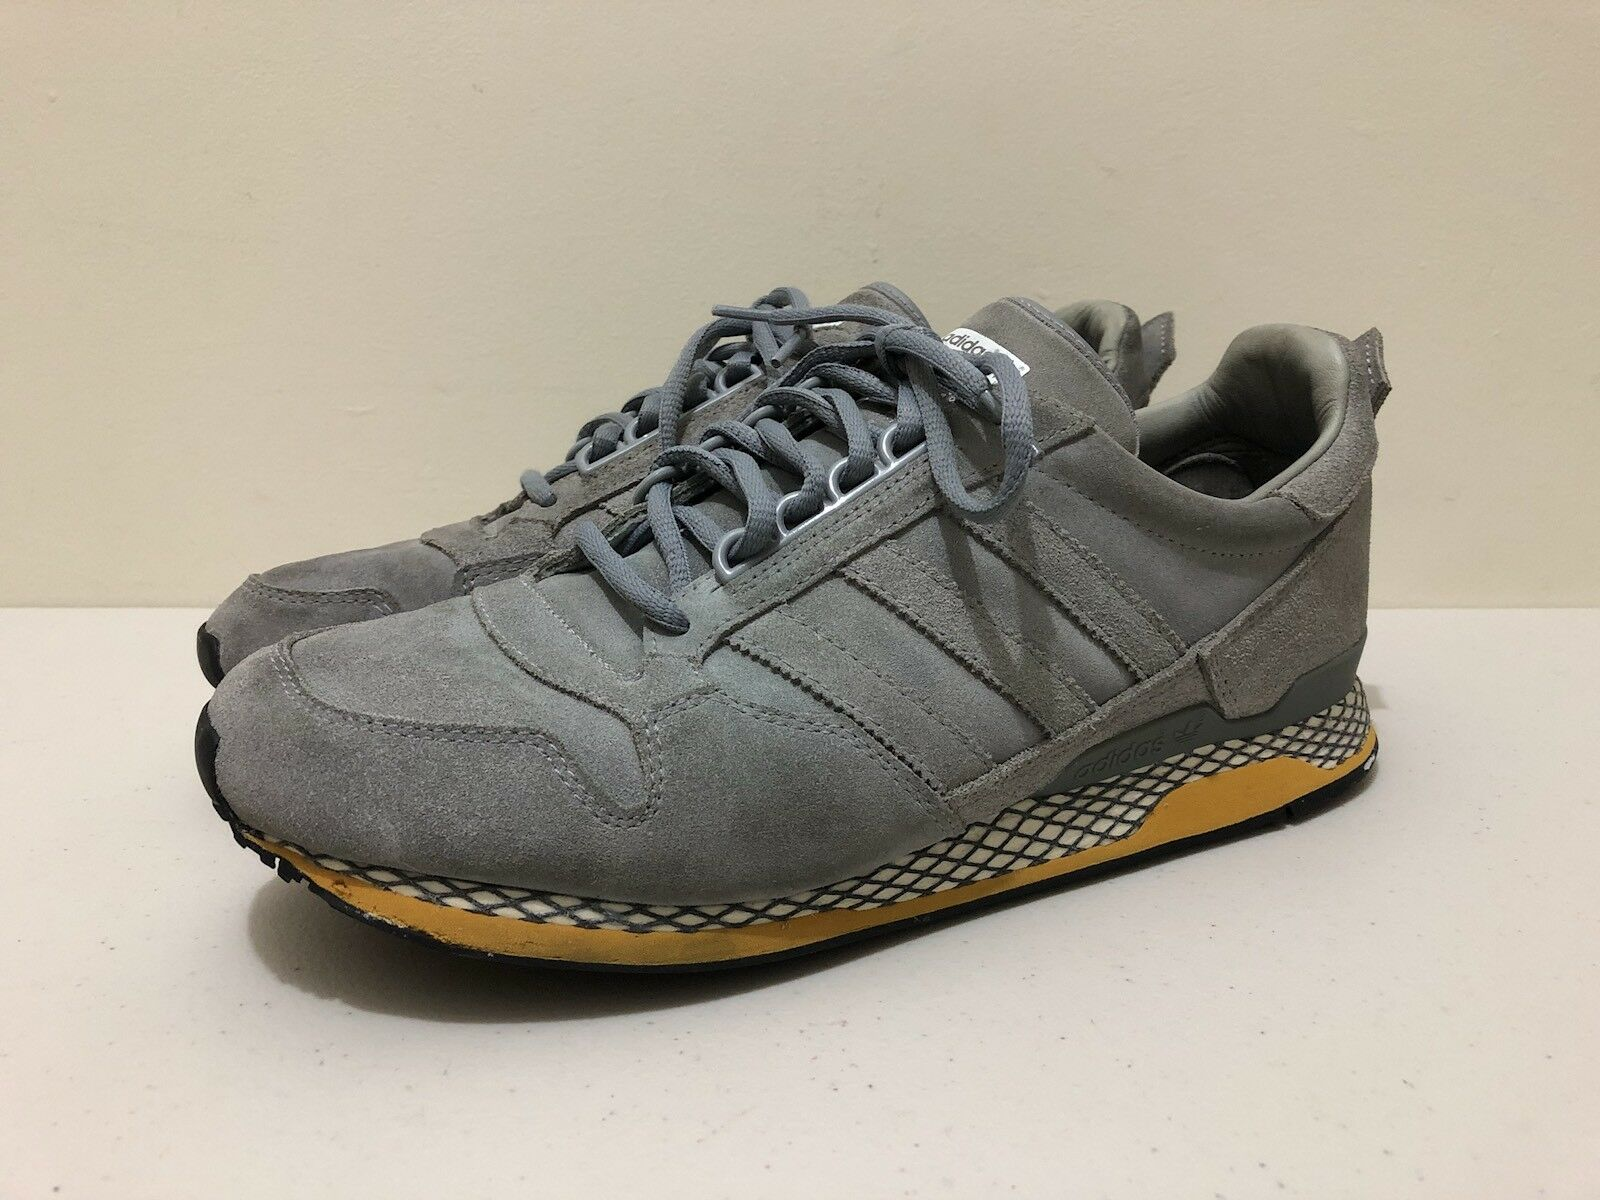 ADIDAS X KZK ZXZ Chaussures Homme ~ US 109.5 ~ SNEAKERS RUNNERS TRAINERS 84 - LAB